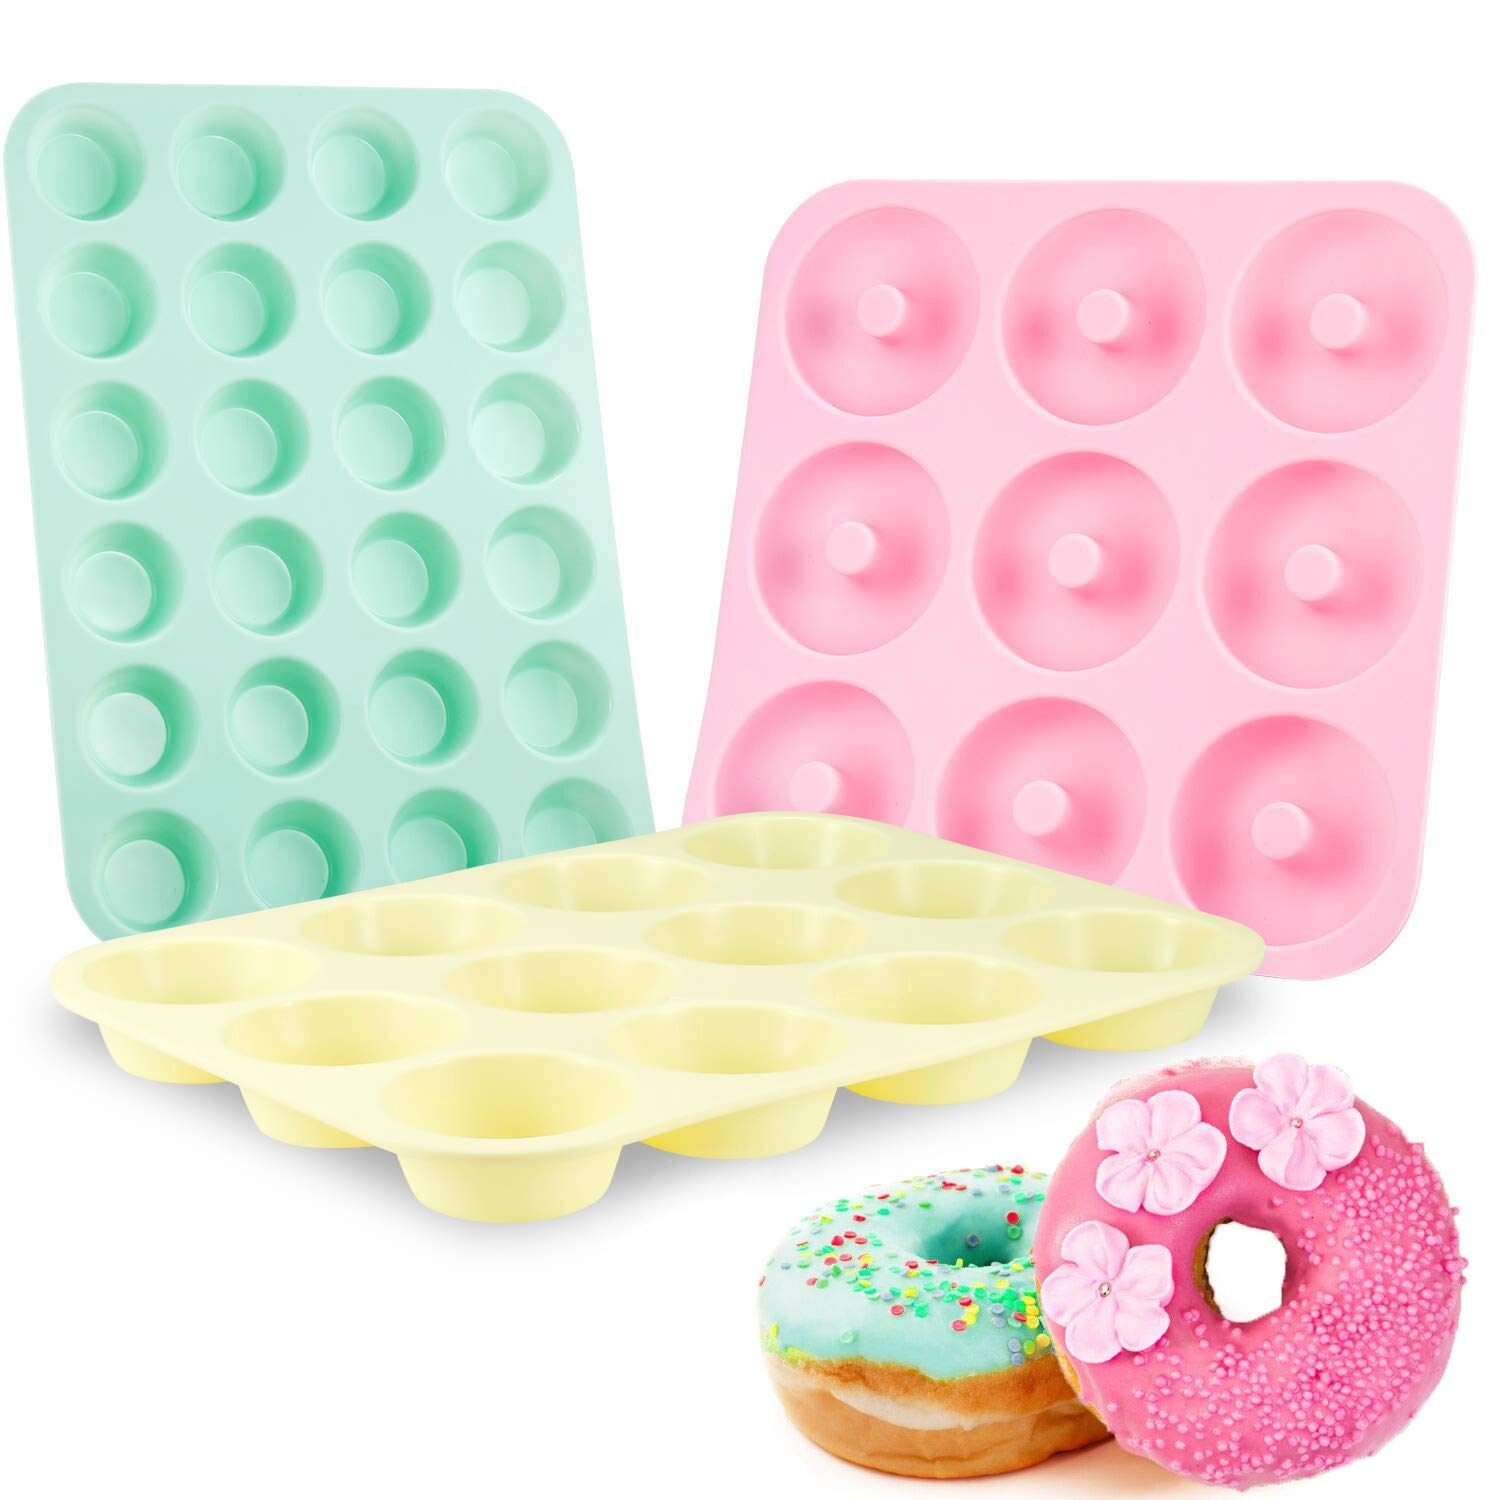 Senbowe Silicone Muffin and Cupcake Pans - Set of 3 | Silicone Cake Baking Molds | Large (12) and Mini (24) |Medium Doughnut (9) | Easy to Clean Non Stick Bakeware | BPA Free and Dishwasher Safe by senbowe